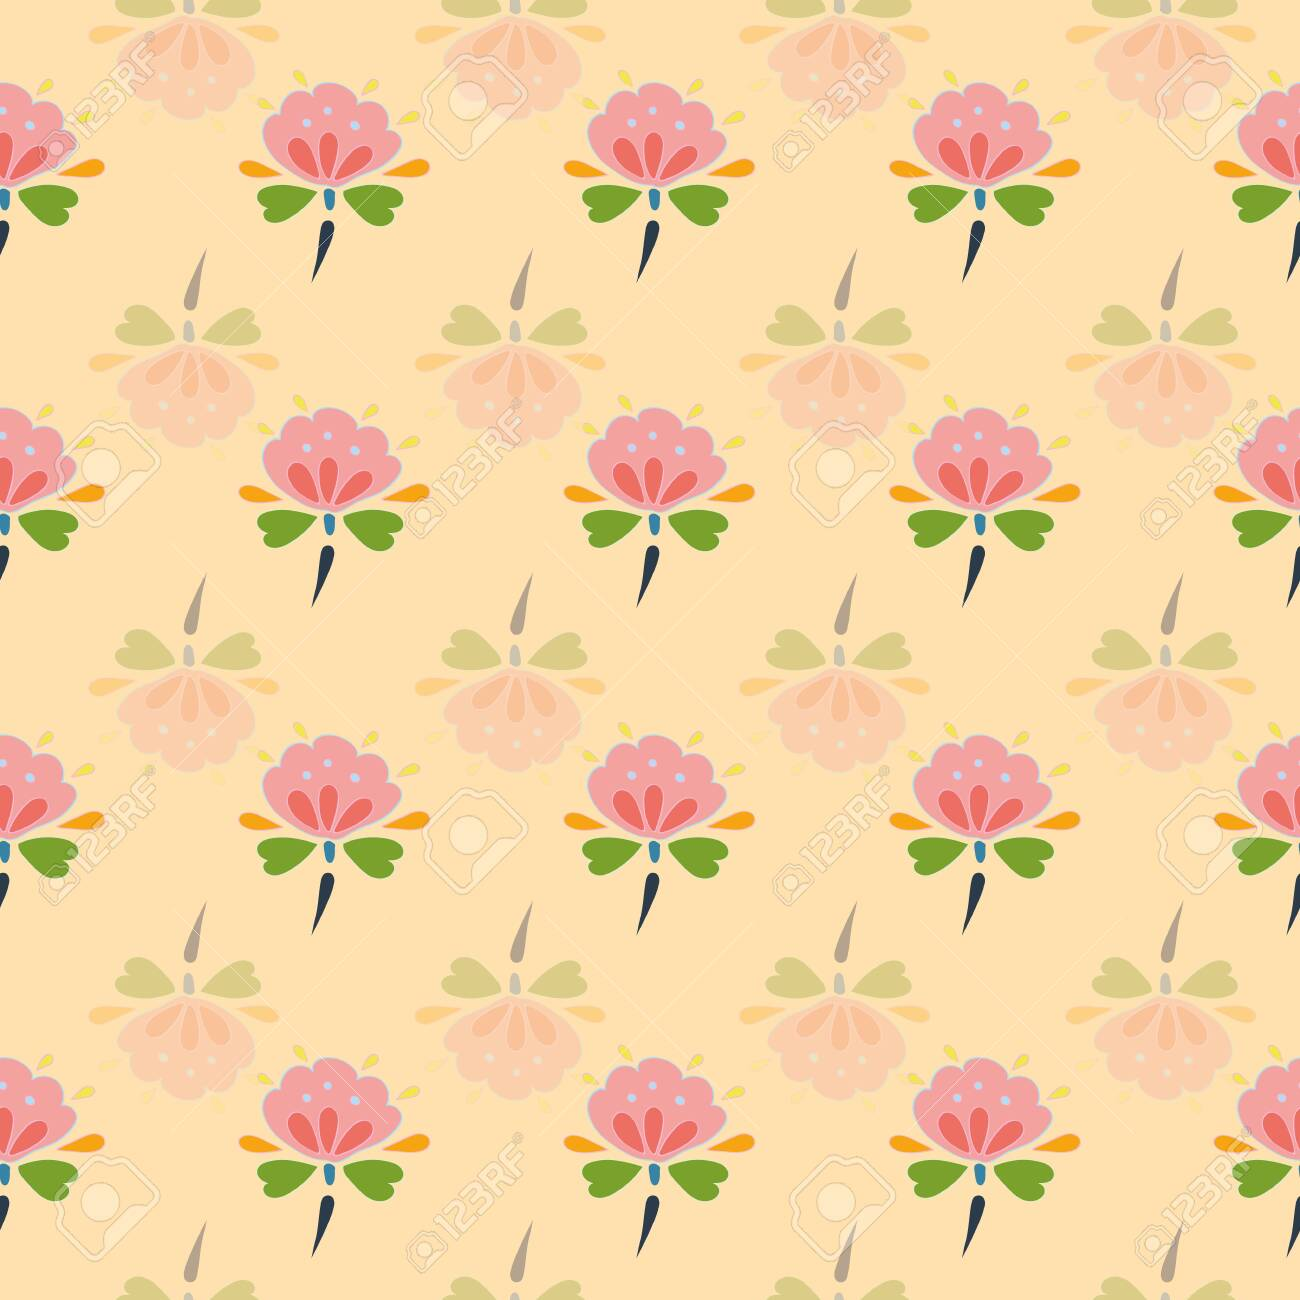 Floral Folk Art Blossom Pattern Simple Geometric Background